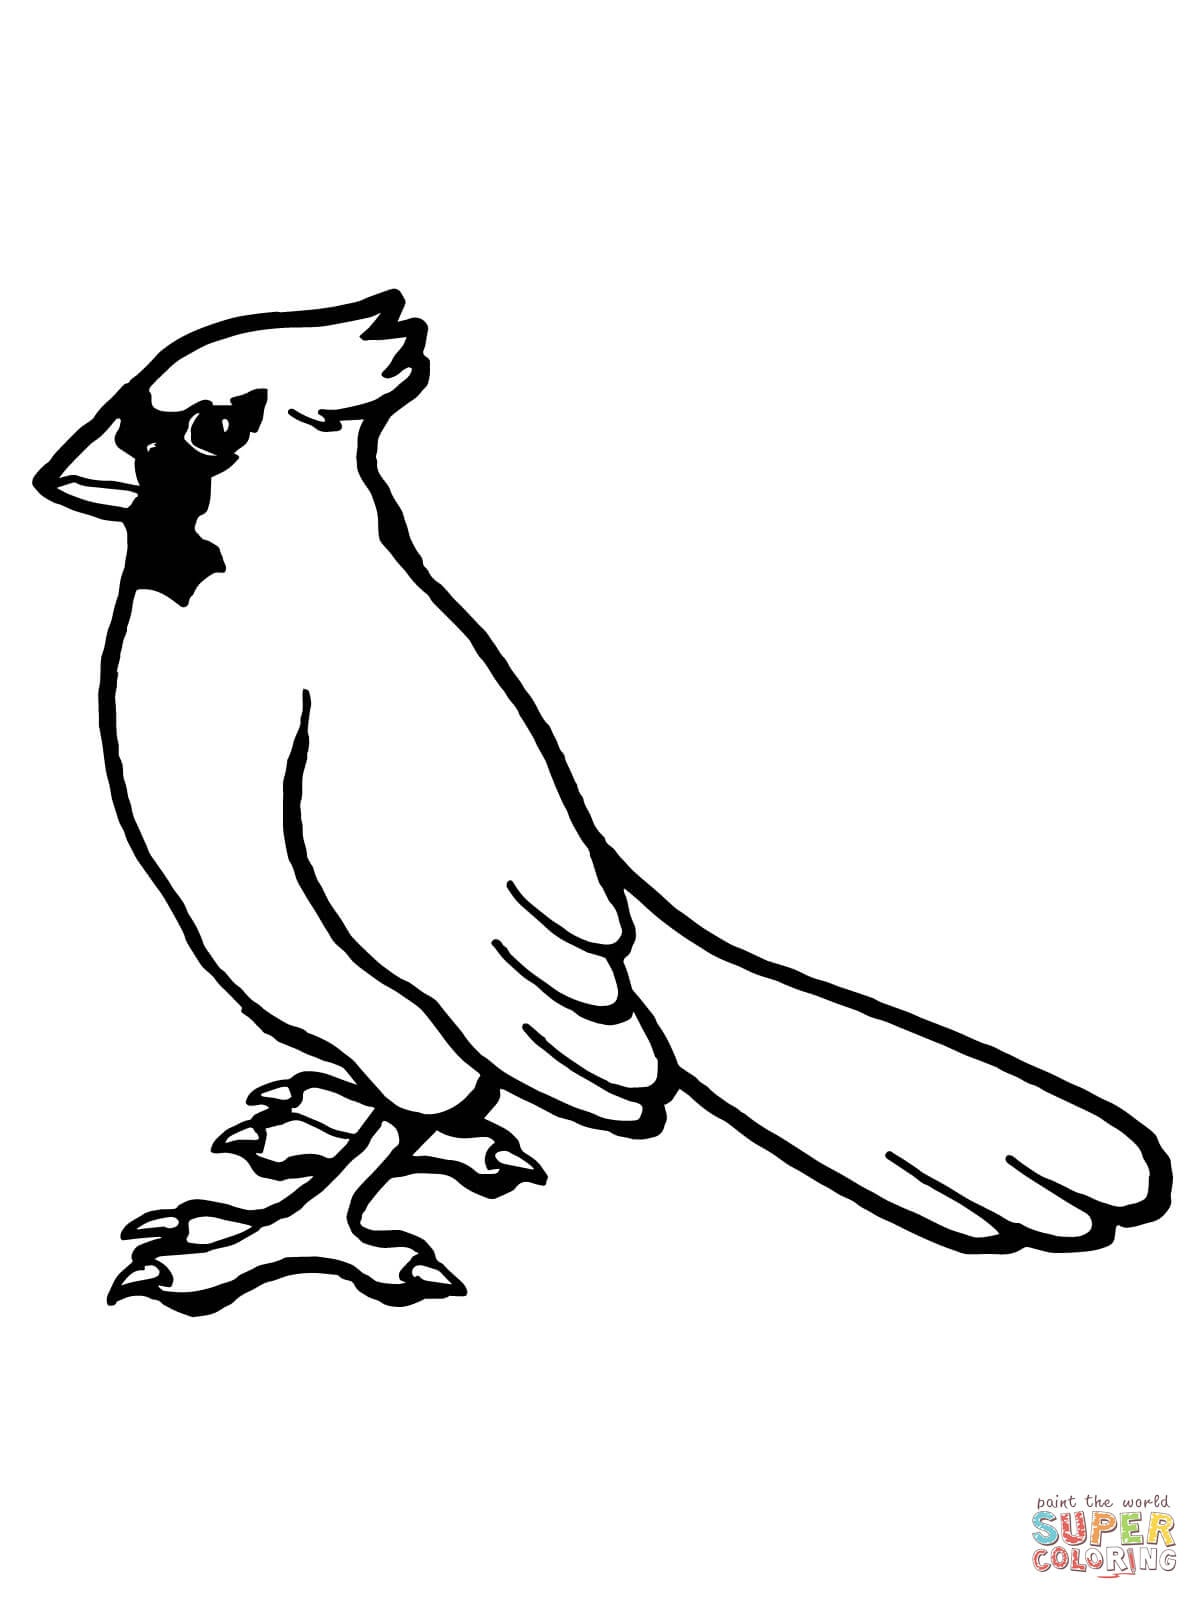 Nothern Cardinal Bird Coloring Page | Free Printable Coloring Pages - Free Printable Pictures Of Cardinals